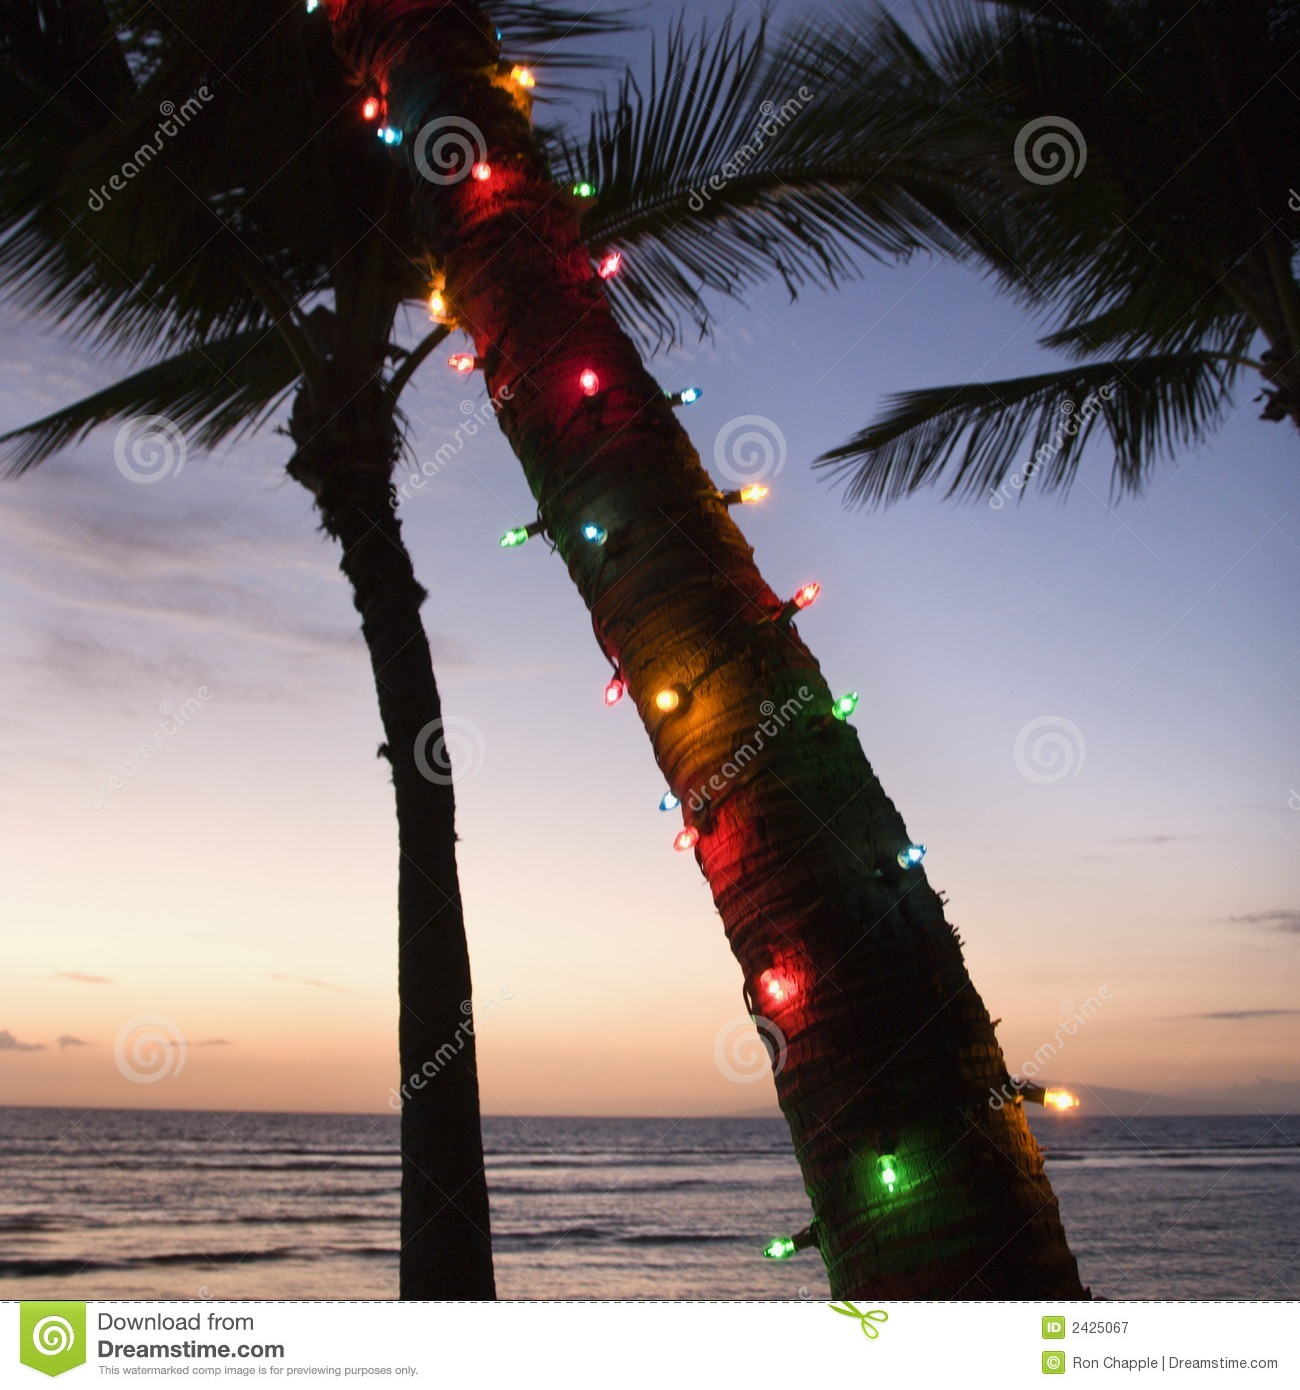 Christmas Lights In Palm Trees.Colored Lights On Palm Tree Stock Image Image Of Ocean